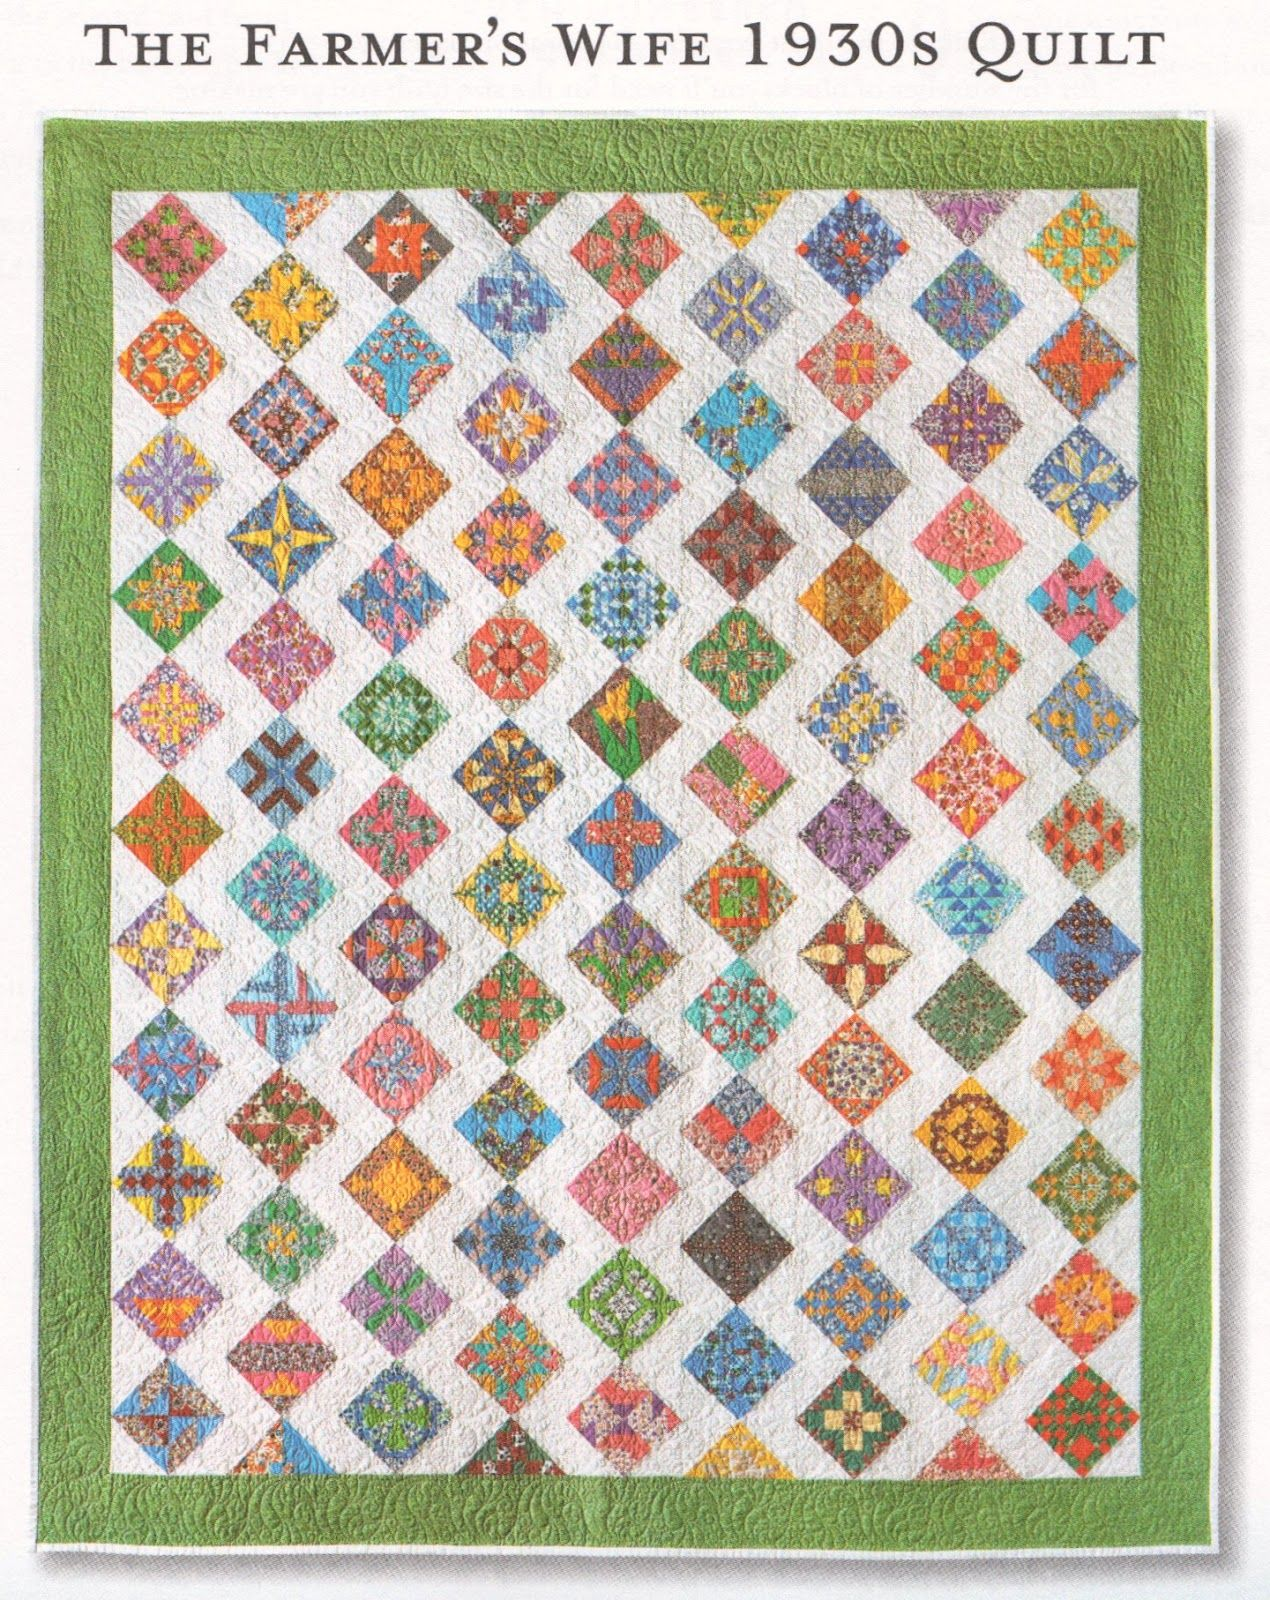 THE FARMER'S WIFE QUILT: LIFE HAS LOVELINESS TO SELL; The Farmer's ... : quilt life - Adamdwight.com